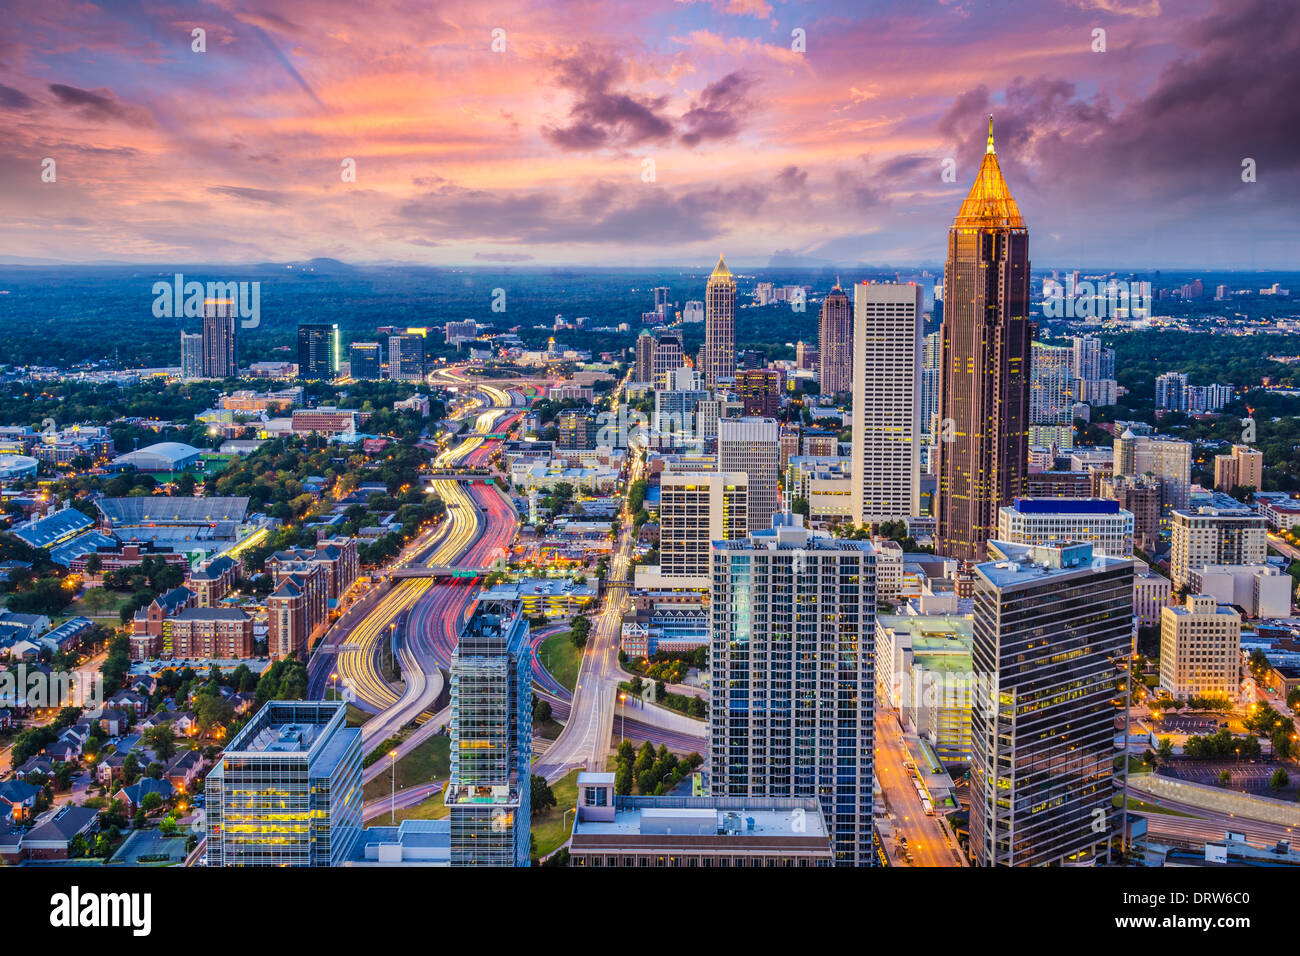 Atlanta, Georgia downtown aerial view. - Stock Image